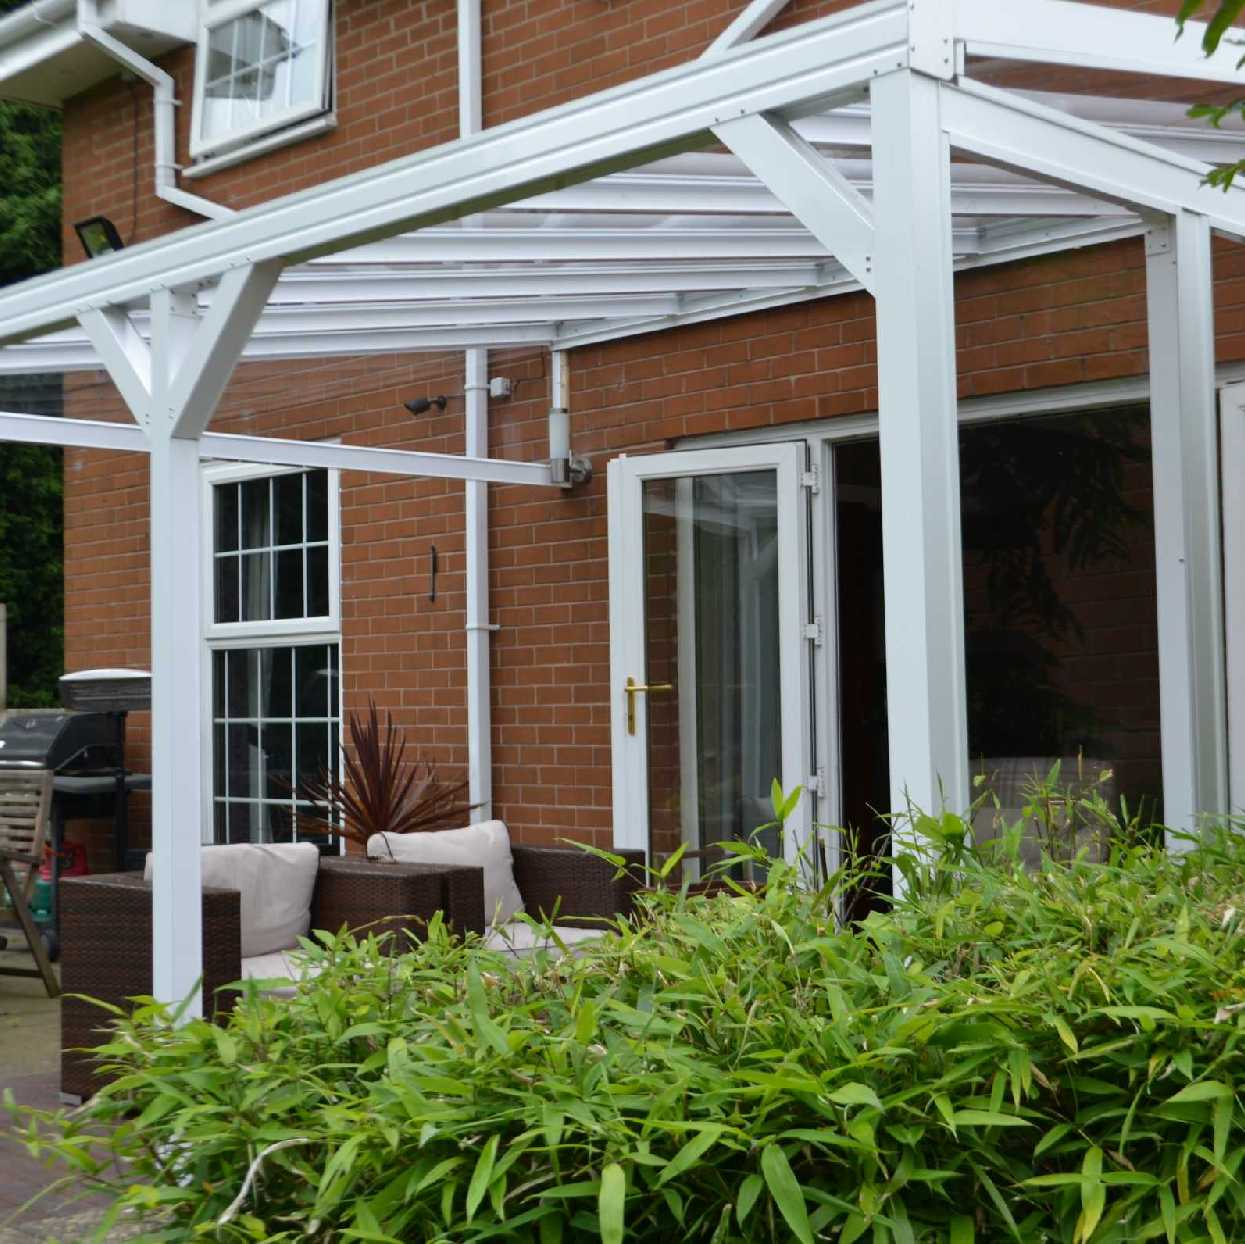 Omega Smart White Lean-To Canopy UNGLAZED for 6mm Glazing - 9.8m (W) x 2.0m (P), (5) Supporting Posts from Omega Build